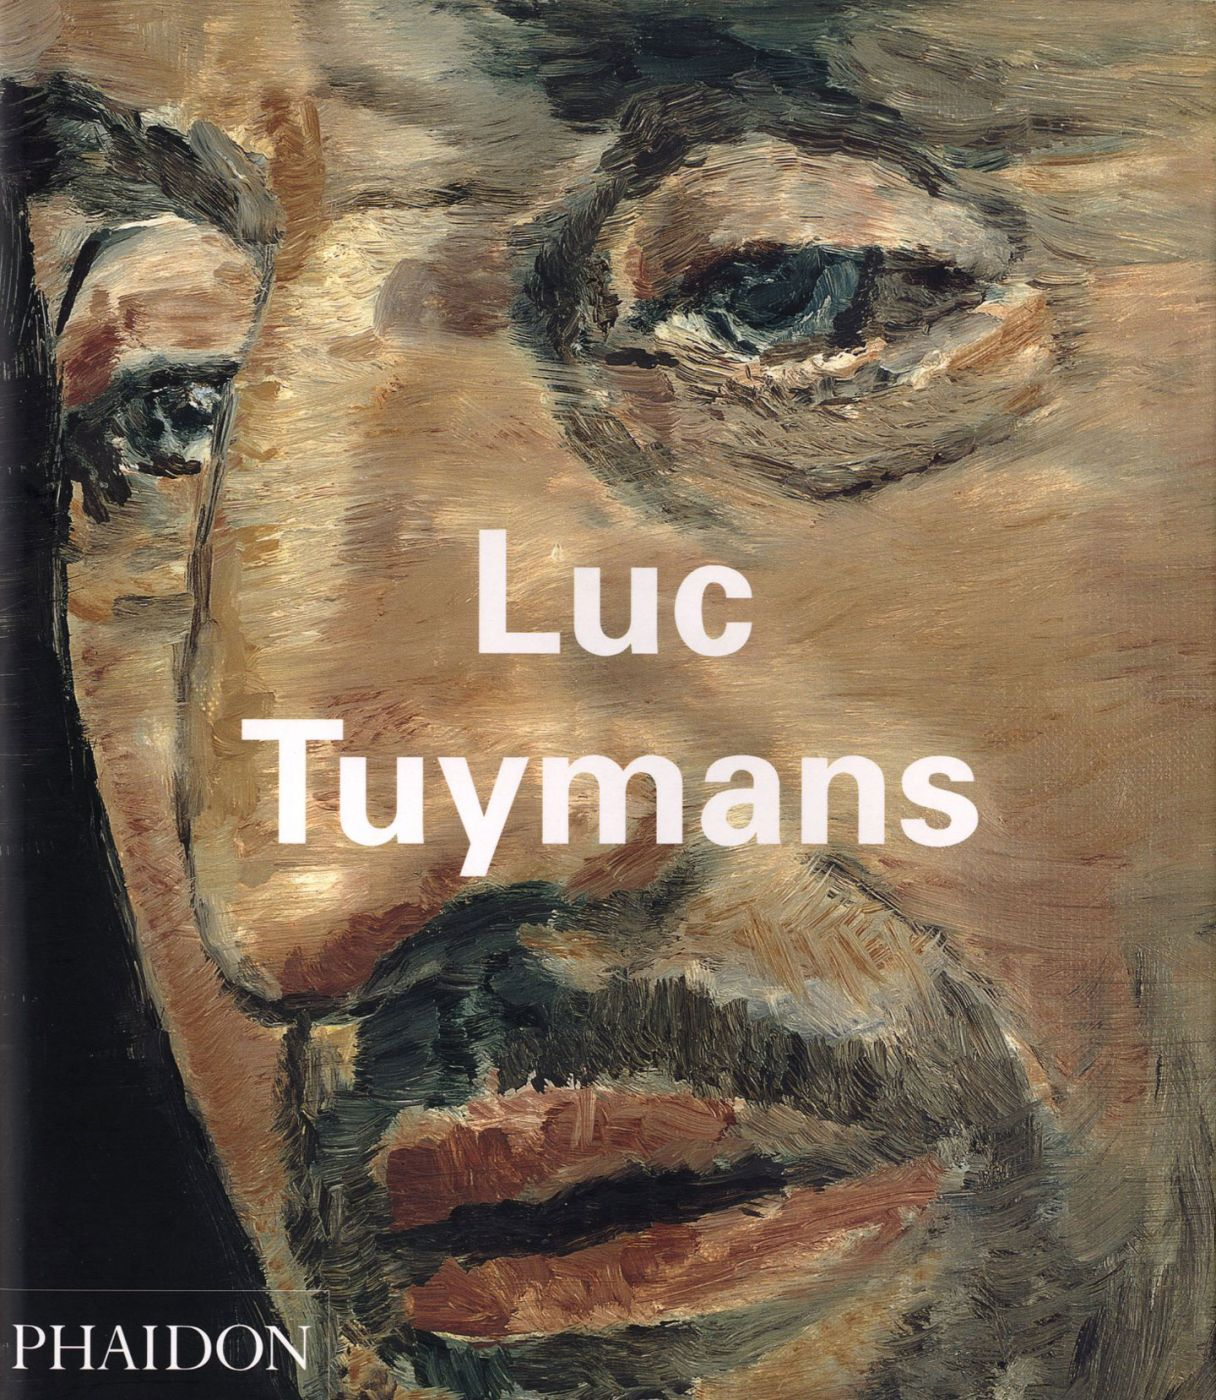 Luc Tuymans Phaidon Contemporary Artists Series, Revised and Expanded  Edition SIGNED by Luc TUYMANS, Juan Vicente, ALIAGA, Ulrich, LOOCK, Nancy  on